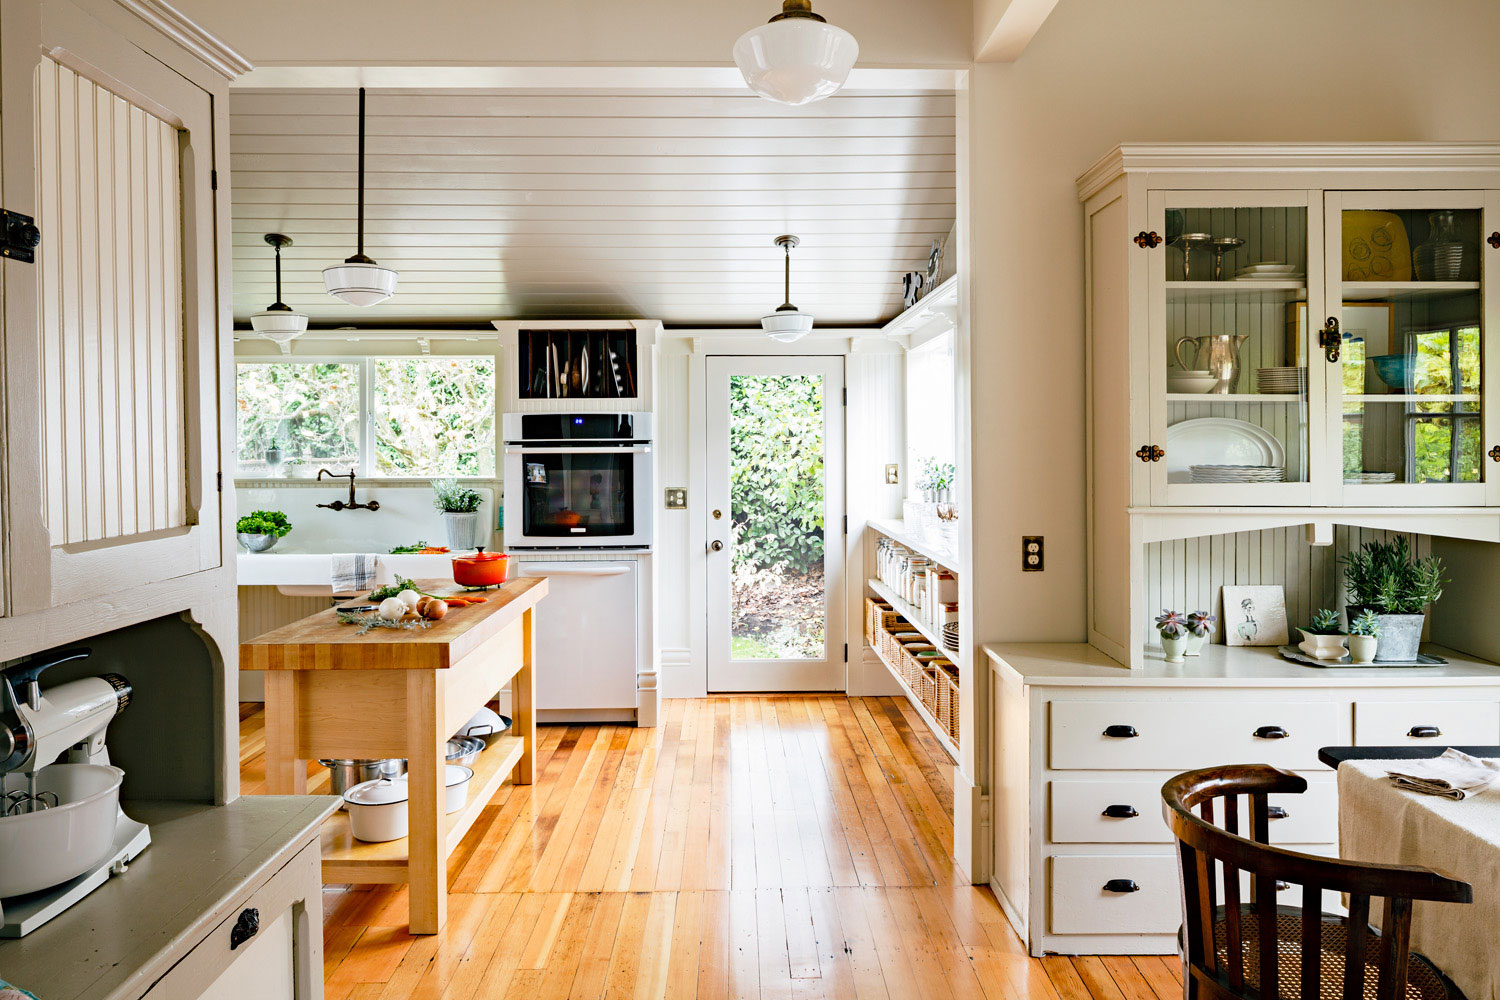 Vintage Kitchen Ideas: How To Design A Vintage-Modern Kitchen